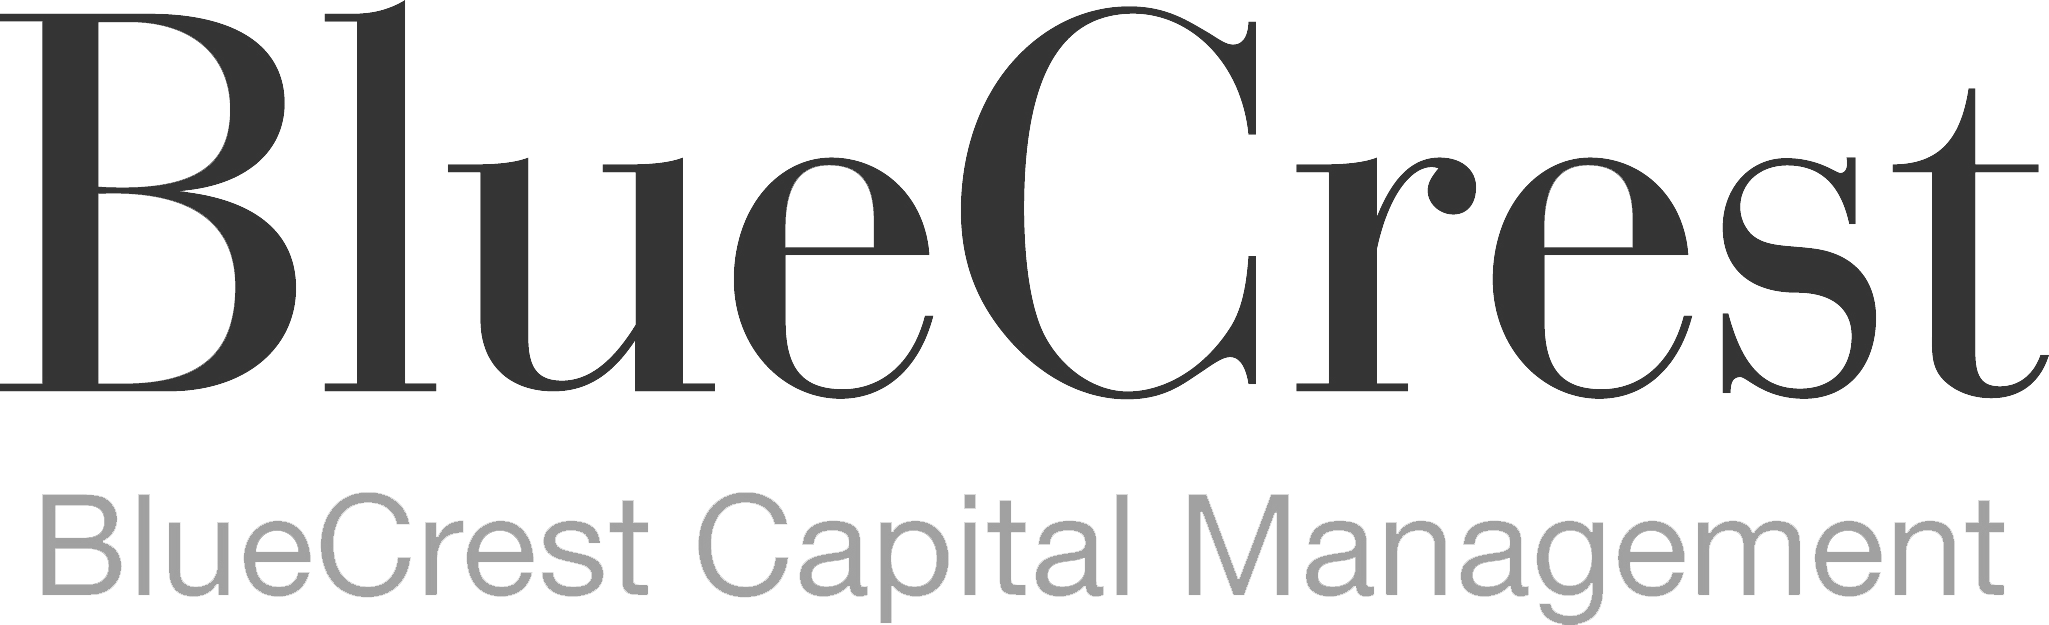 bluecrest capital management logo